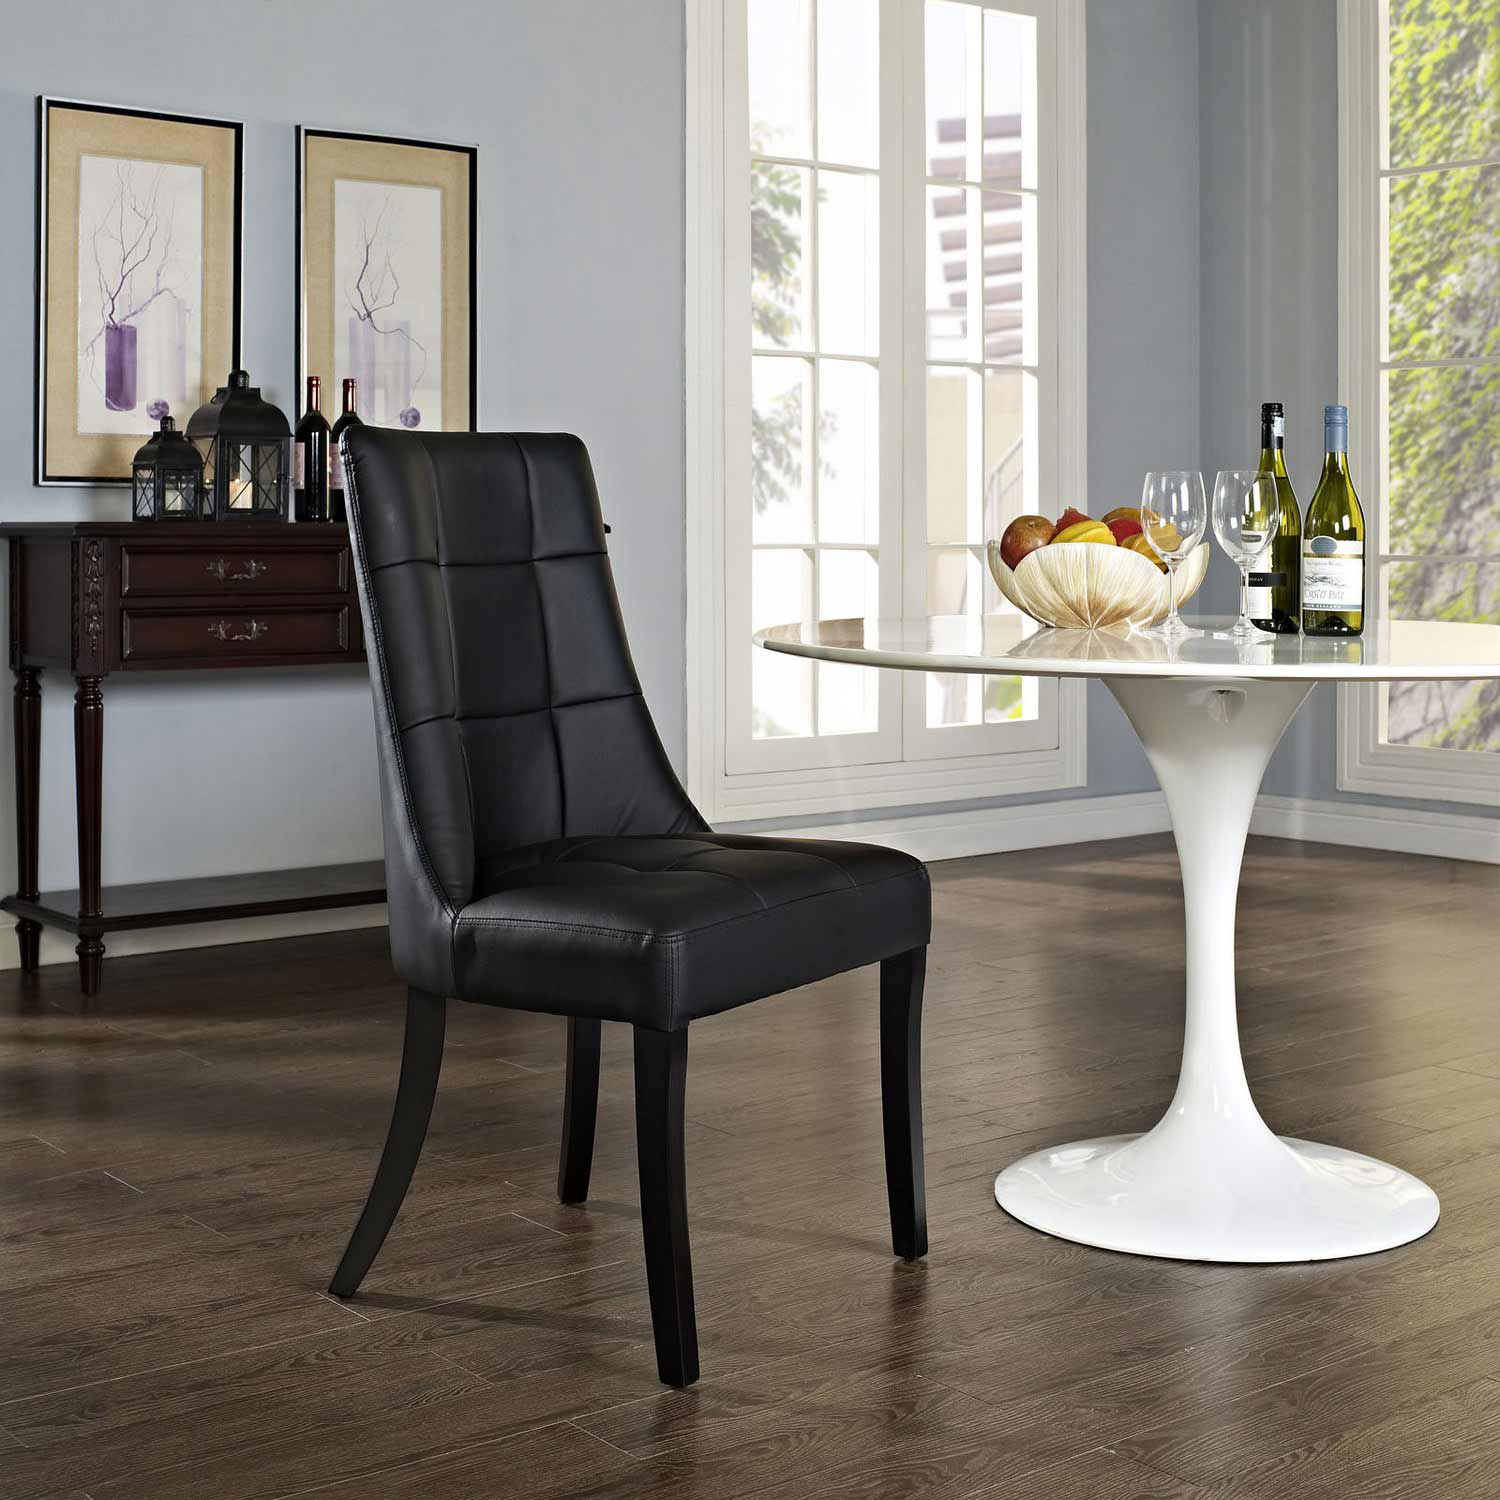 Modway Noblesse Dining Vinyl Side Chair - Black